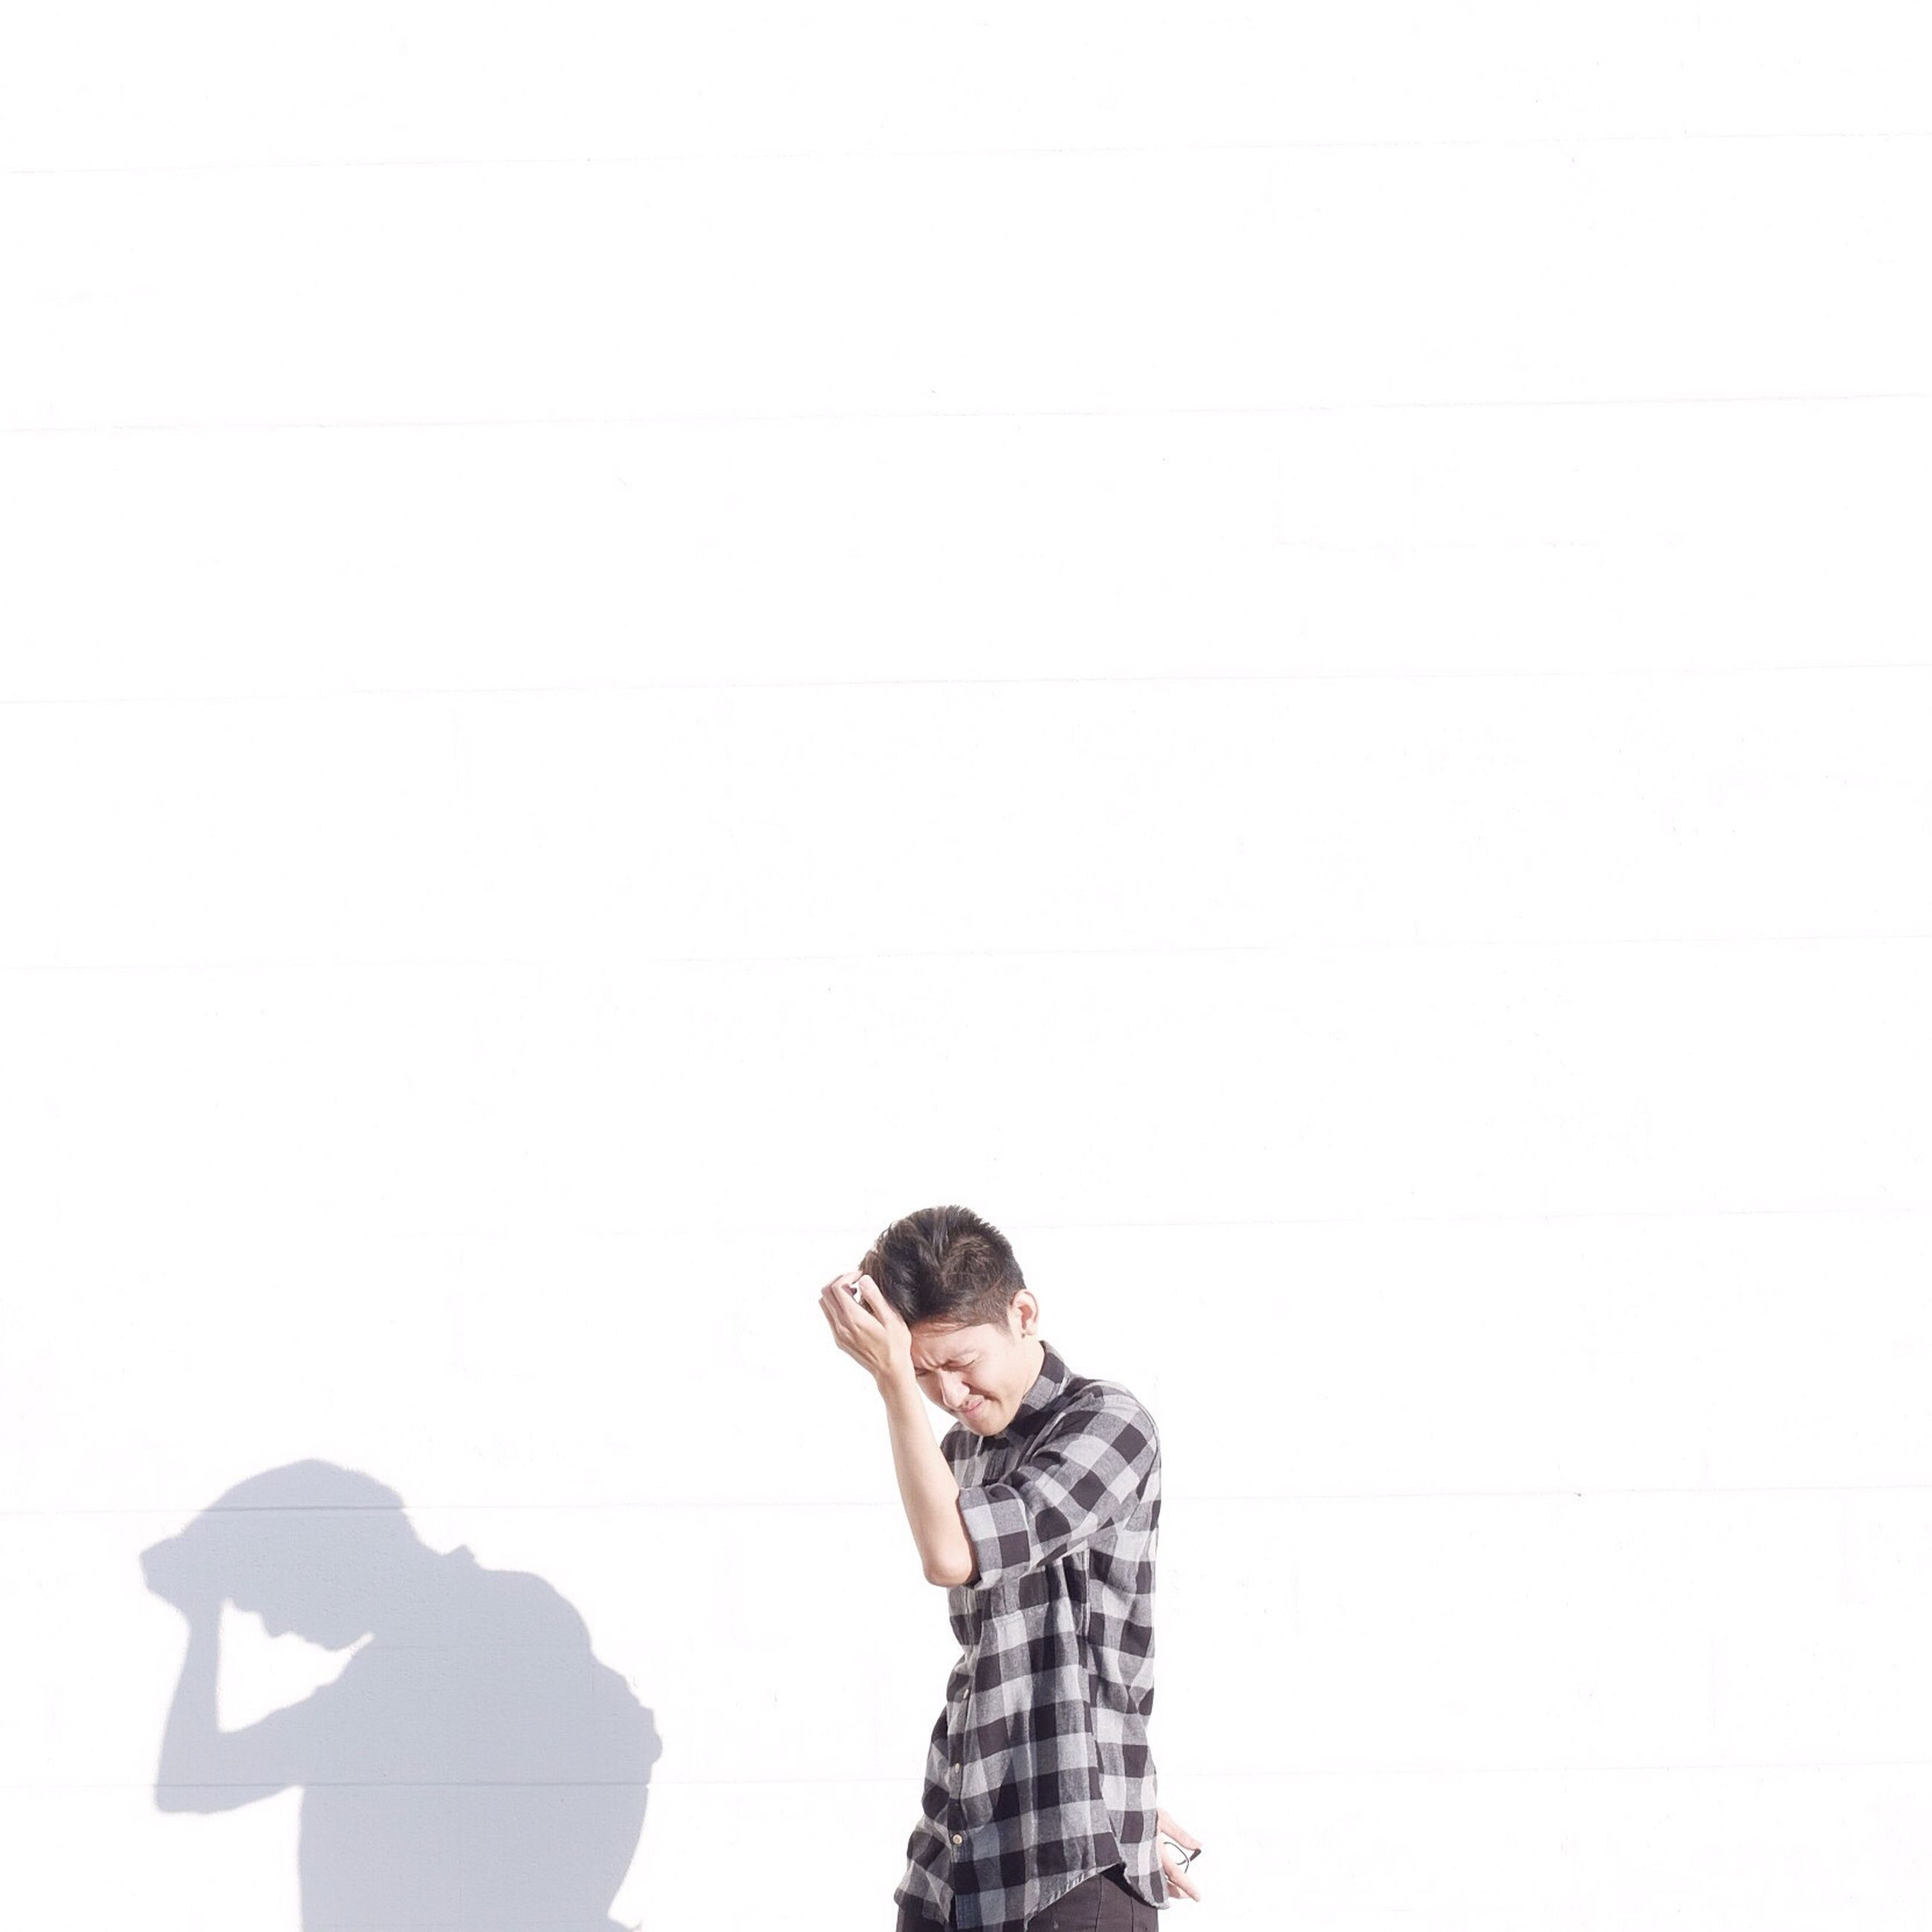 copy space, human representation, standing, art and craft, art, wall - building feature, white background, lifestyles, creativity, sculpture, studio shot, statue, casual clothing, young adult, front view, leisure activity, waist up